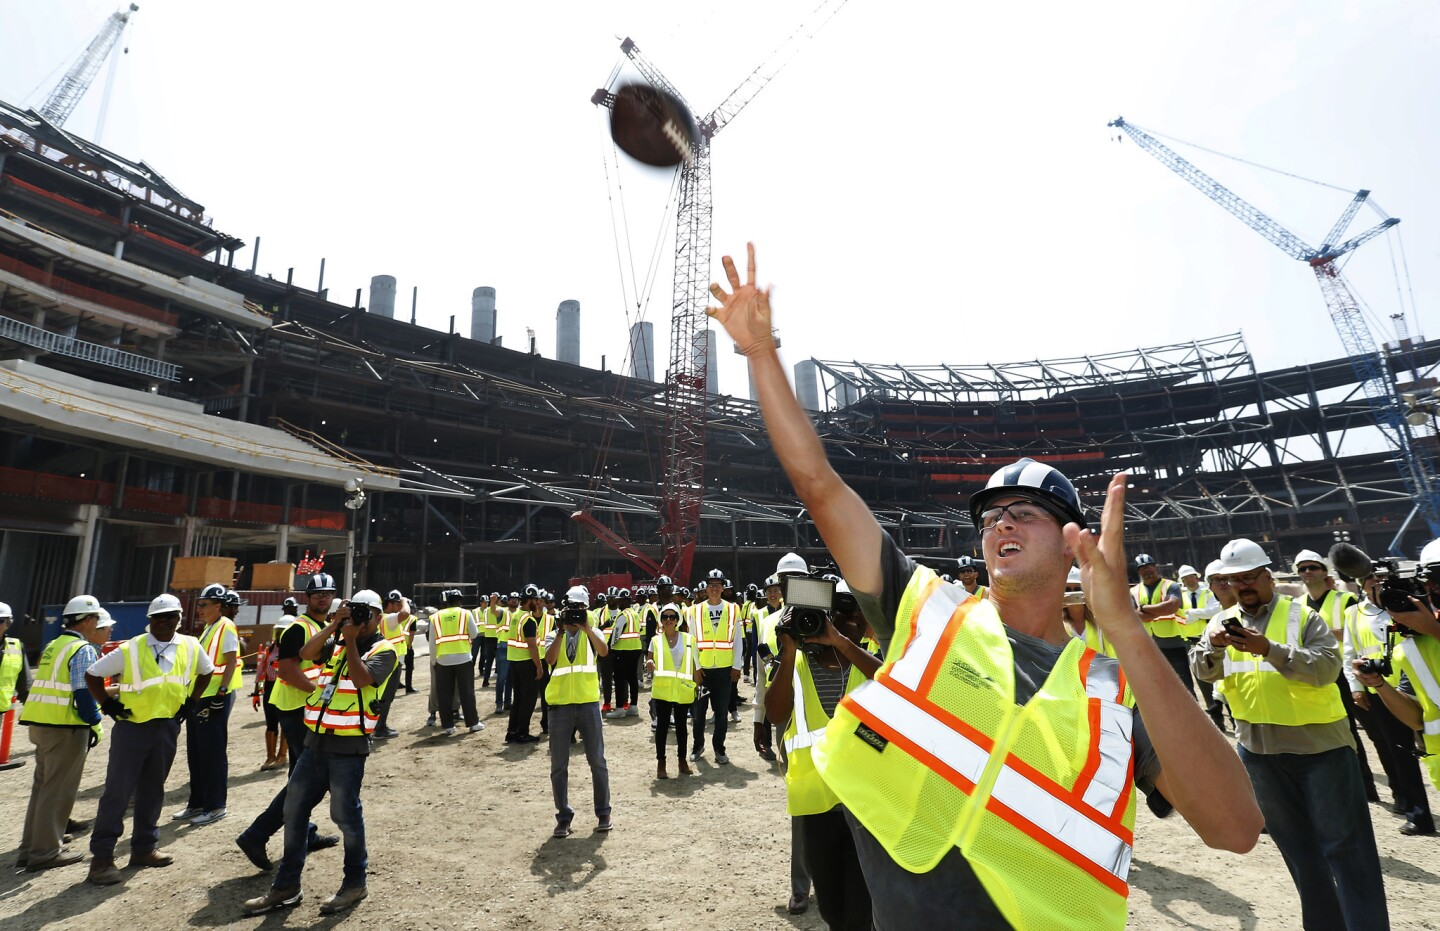 Rams quarterback Jared Goff tosses a football up to construction workers in one of the decks above, during a tour of Los Angeles Stadium at Hollywood Park in Inglewood, the future home of the Rams. Instead of practice on the final day of minicamp, the Rams players and coaches boarded buses and headed to the stadium under construction in Inglewood.